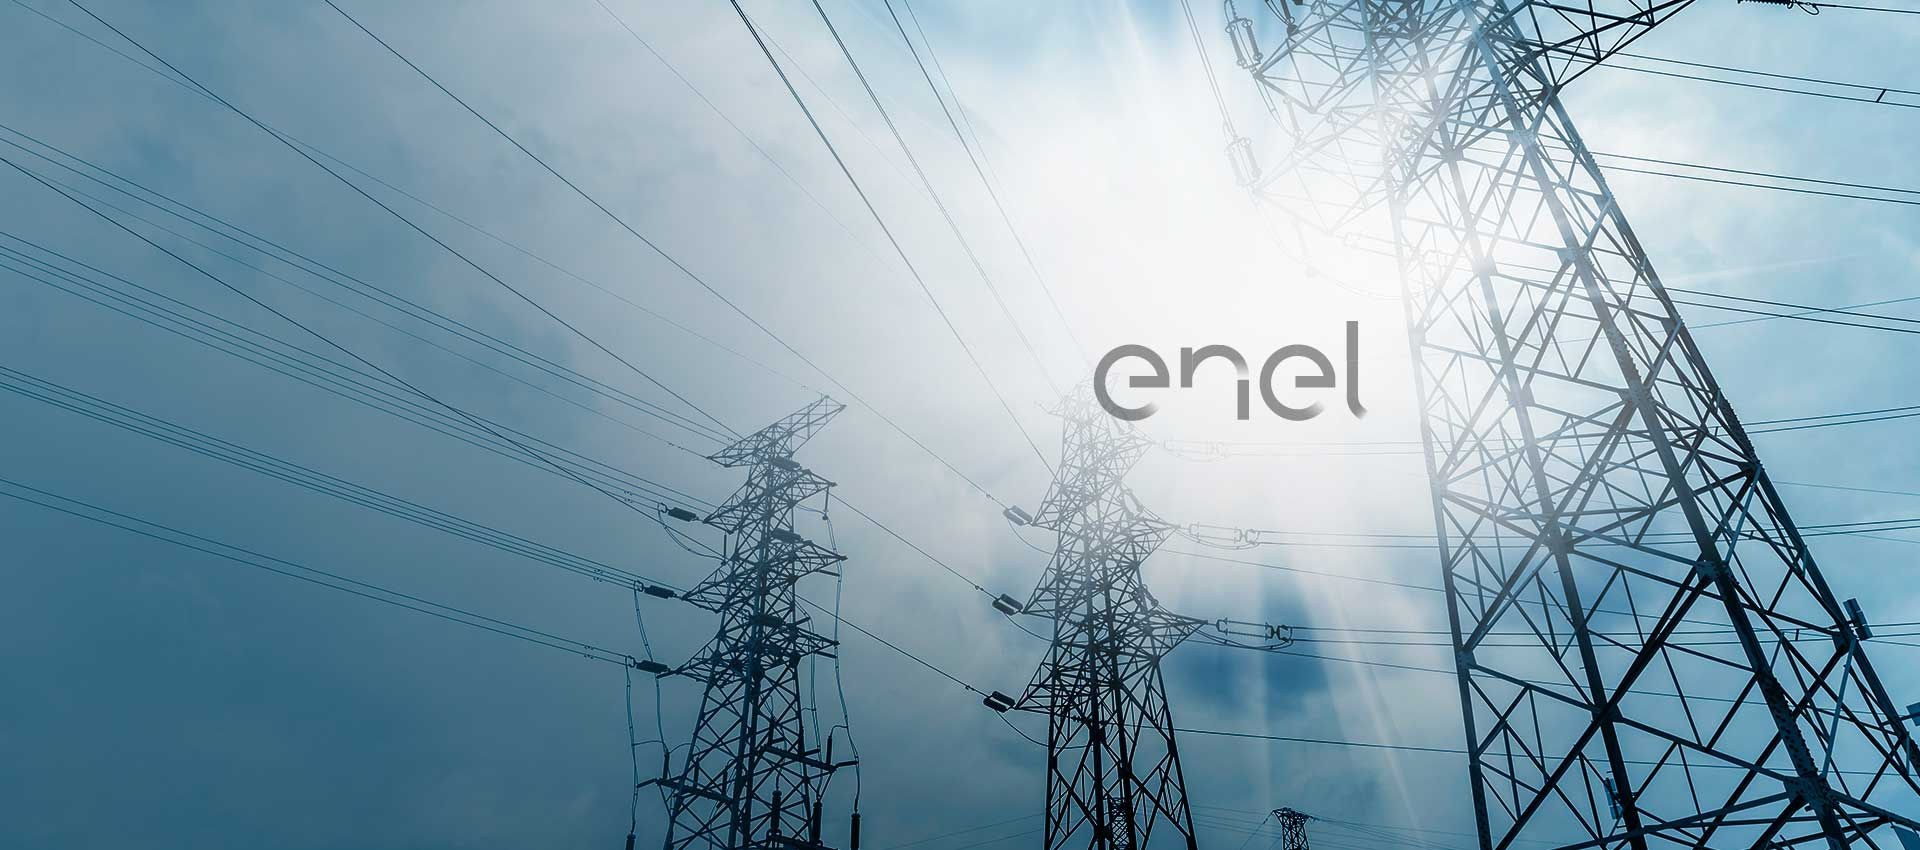 C3 Press Release - C3 is working with Enel as its strategic provider of big data platforms and applications